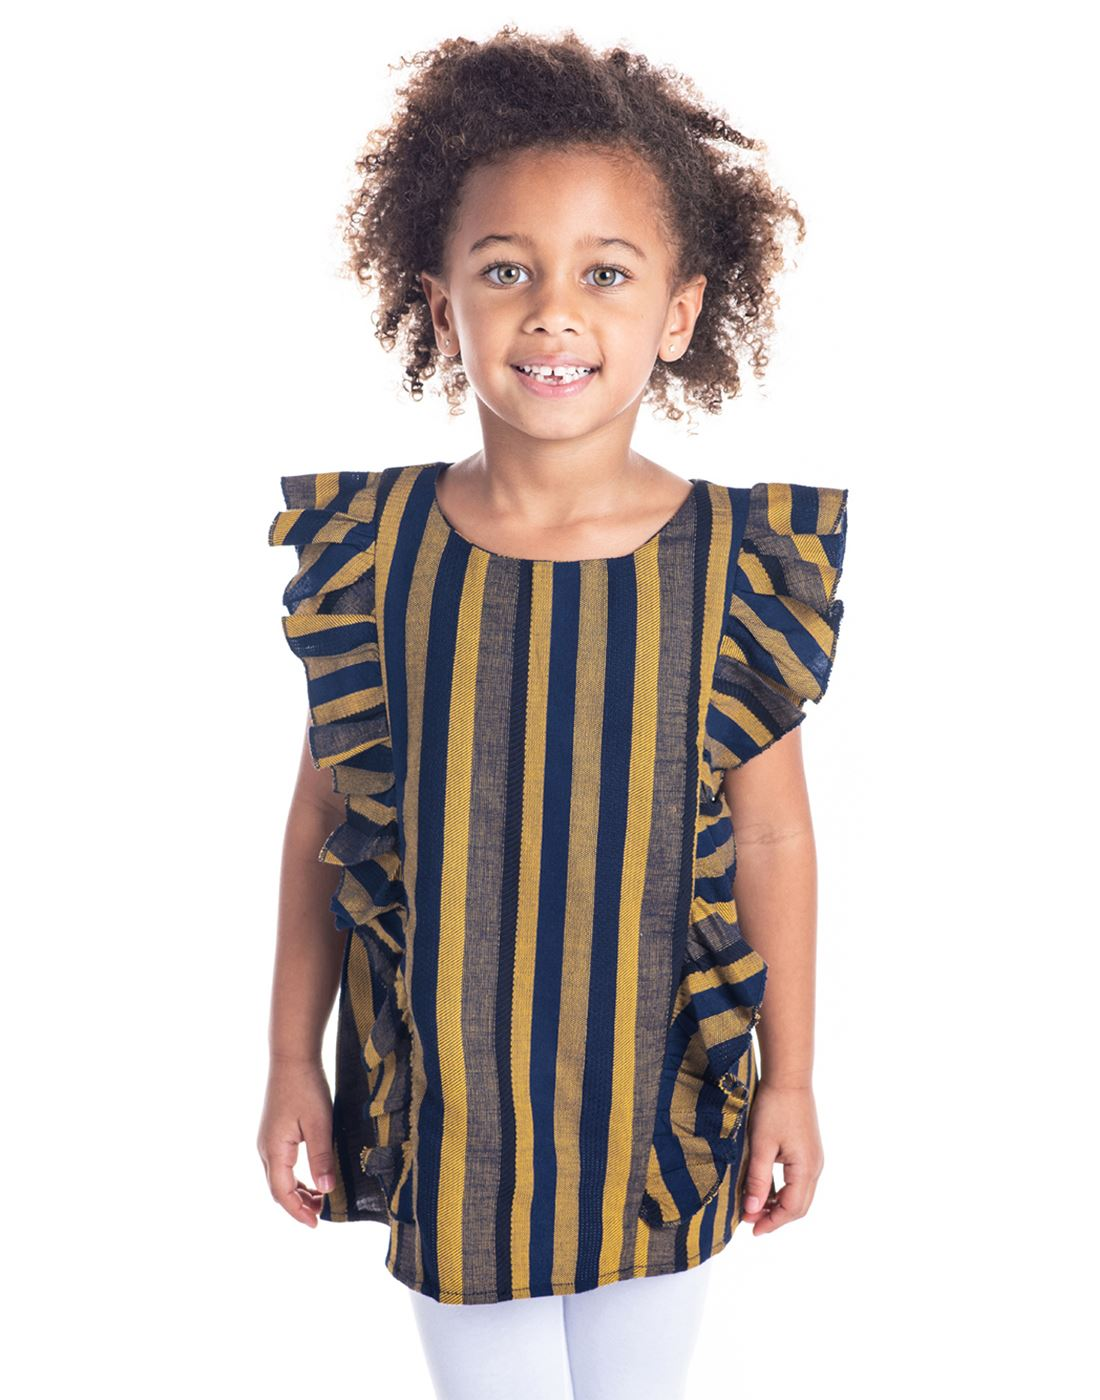 be0d34129 Cherry Crumble California Casual Wear Striped Girls Top